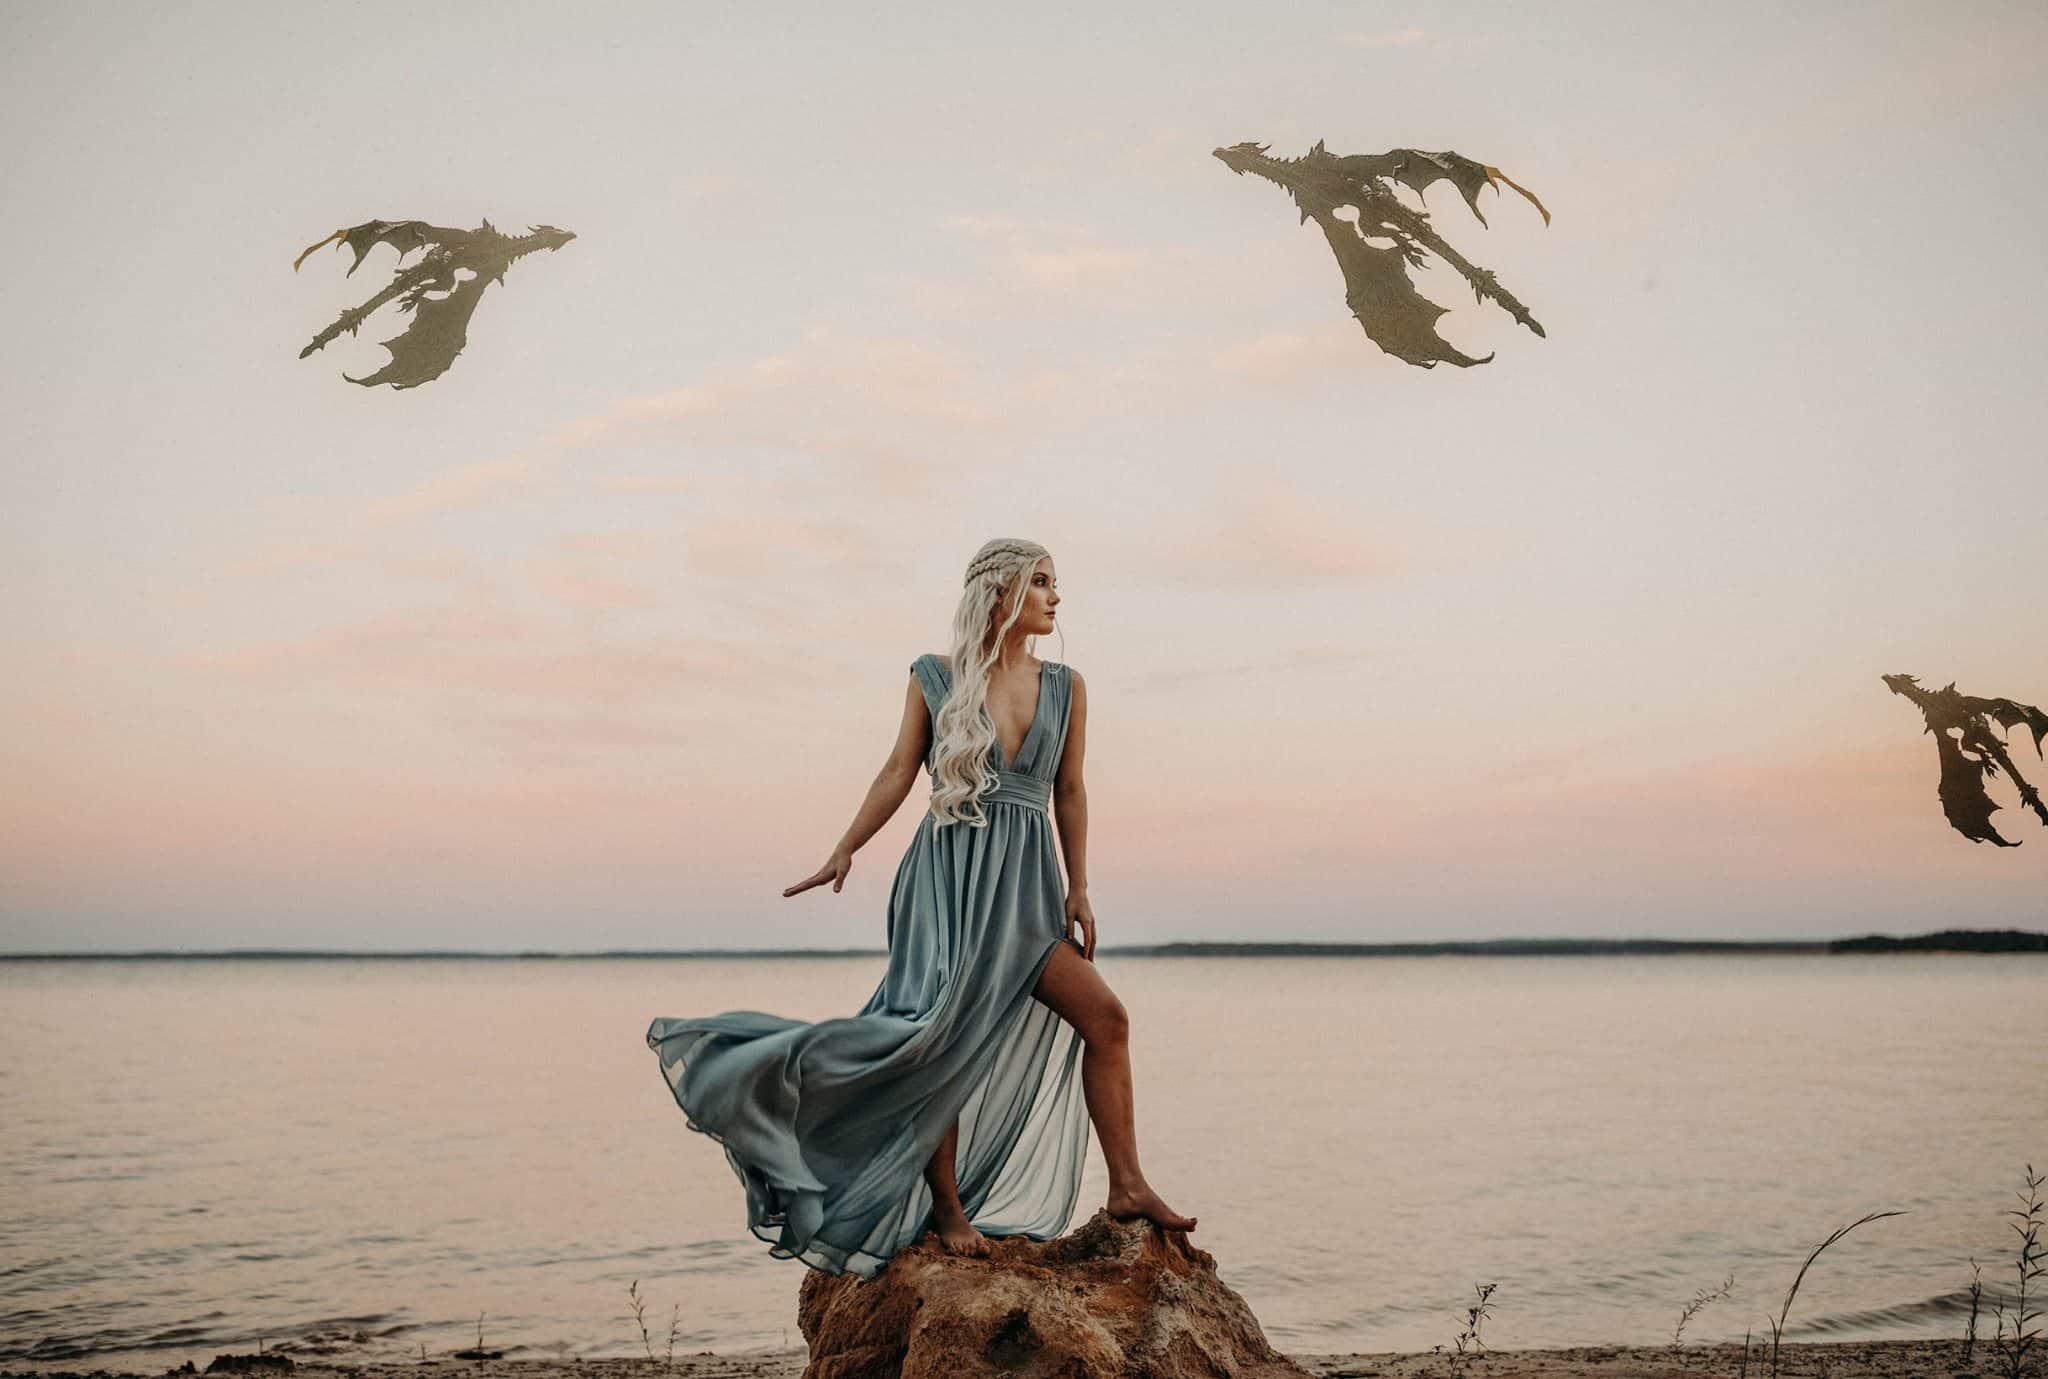 Daenerys Targaryen is standing at a lake and you can see her three dragons flying in the sky